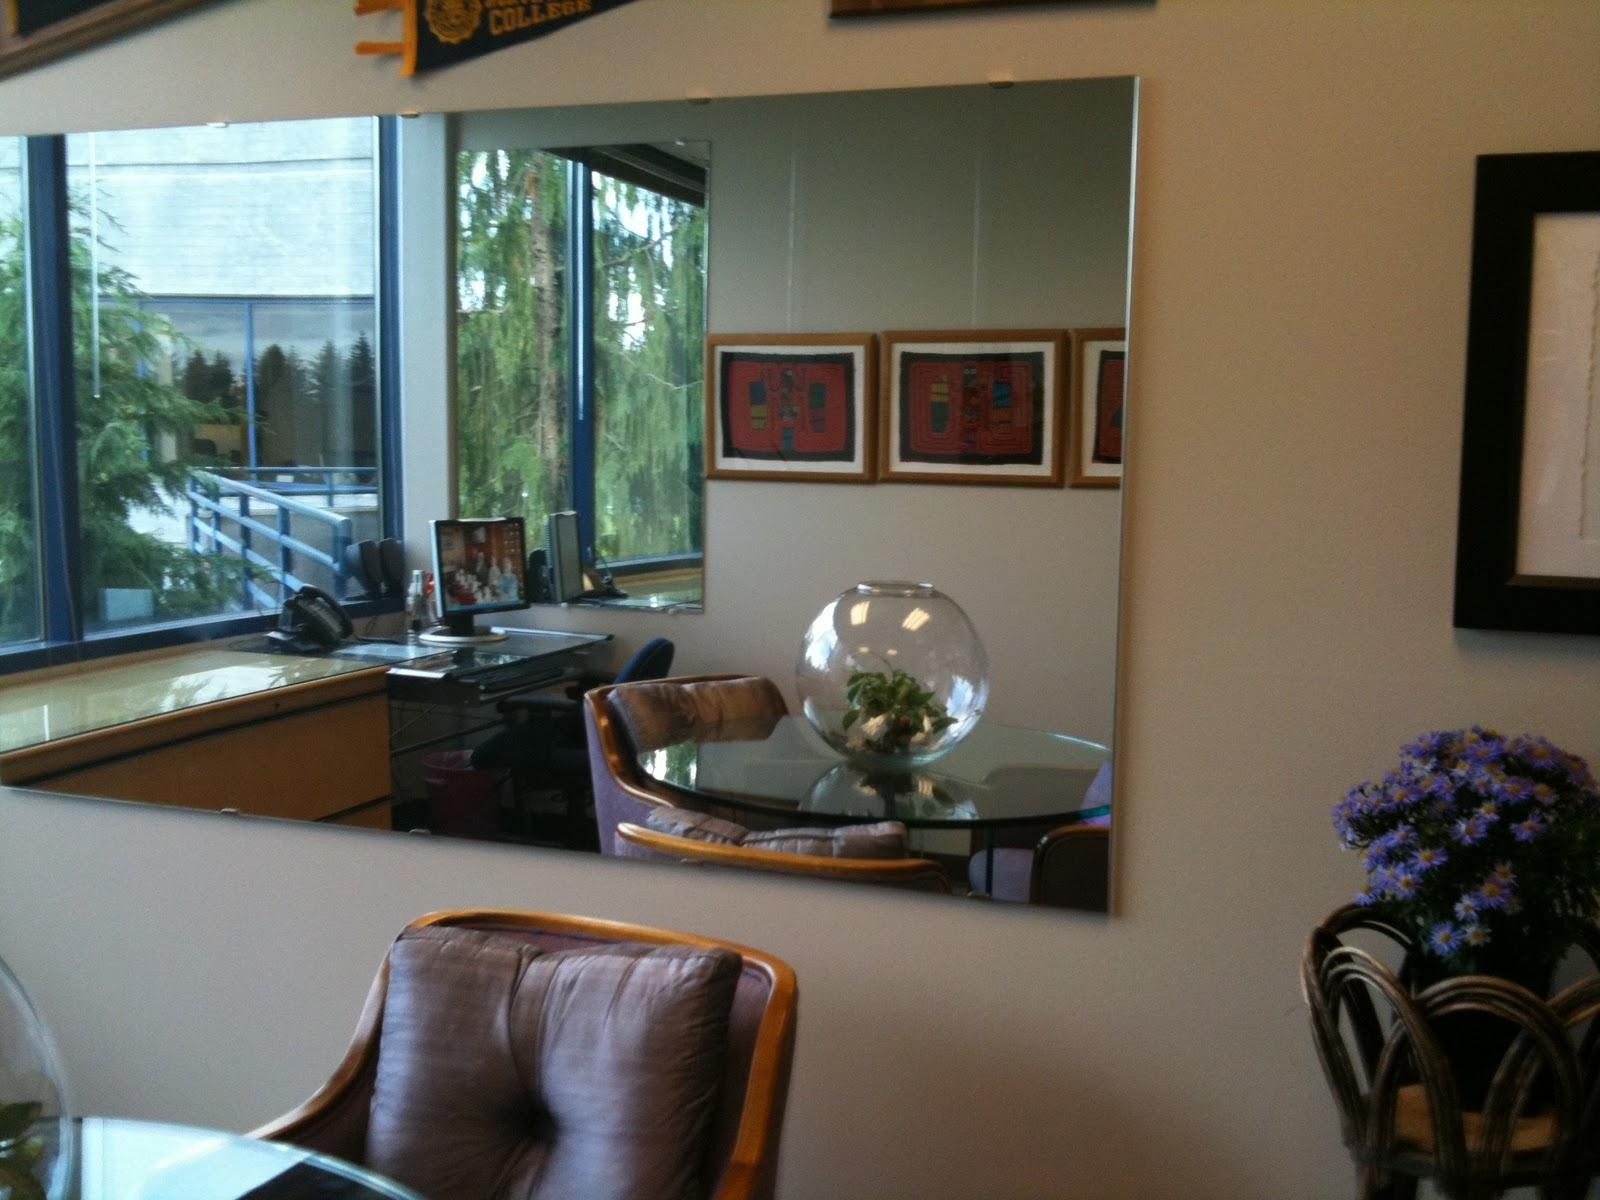 http://ufosviews.com/wp-content/uploads/2014/01/Use-a-Mirror-in-Your-Office-to-Maximize-Beauty.jpg